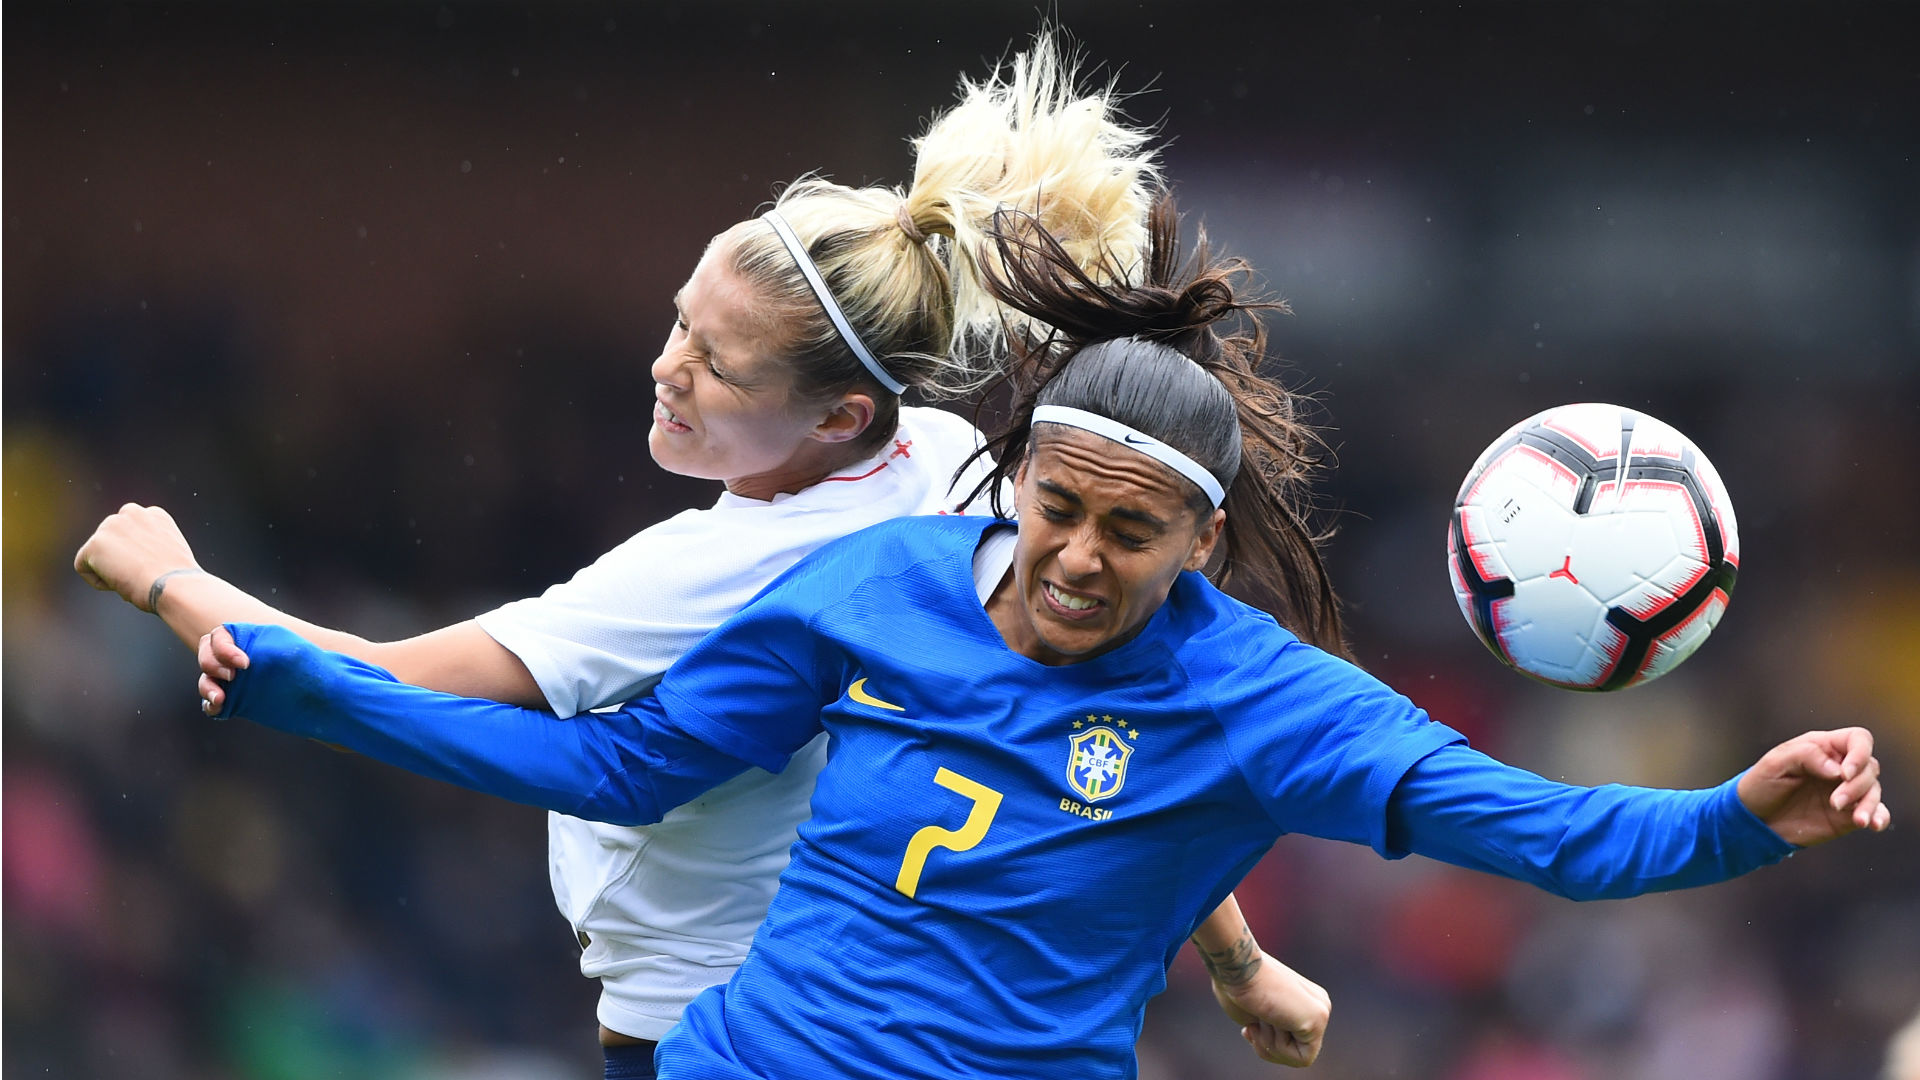 Brazil's Alves ruled out of Women's World Cup